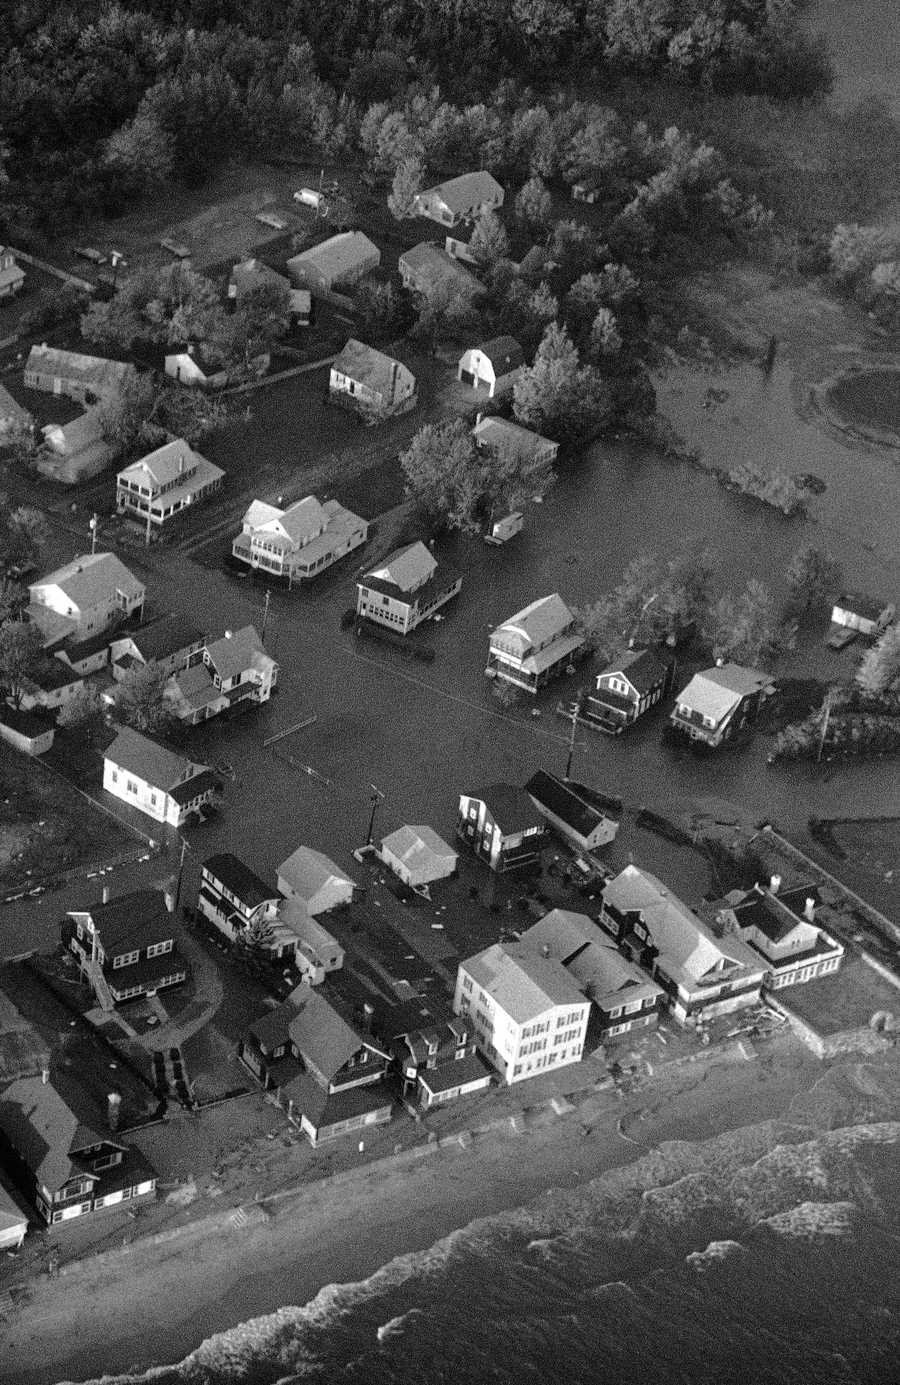 Water surrounded some houses along the shore in Westbrook, Connecticut on Friday, Sept. 28, 1985, after Hurricane Gloria hit Connecticut with winds in excess of 90 mph. The storm caused flooding in low-lying areas along the Connecticut shore.